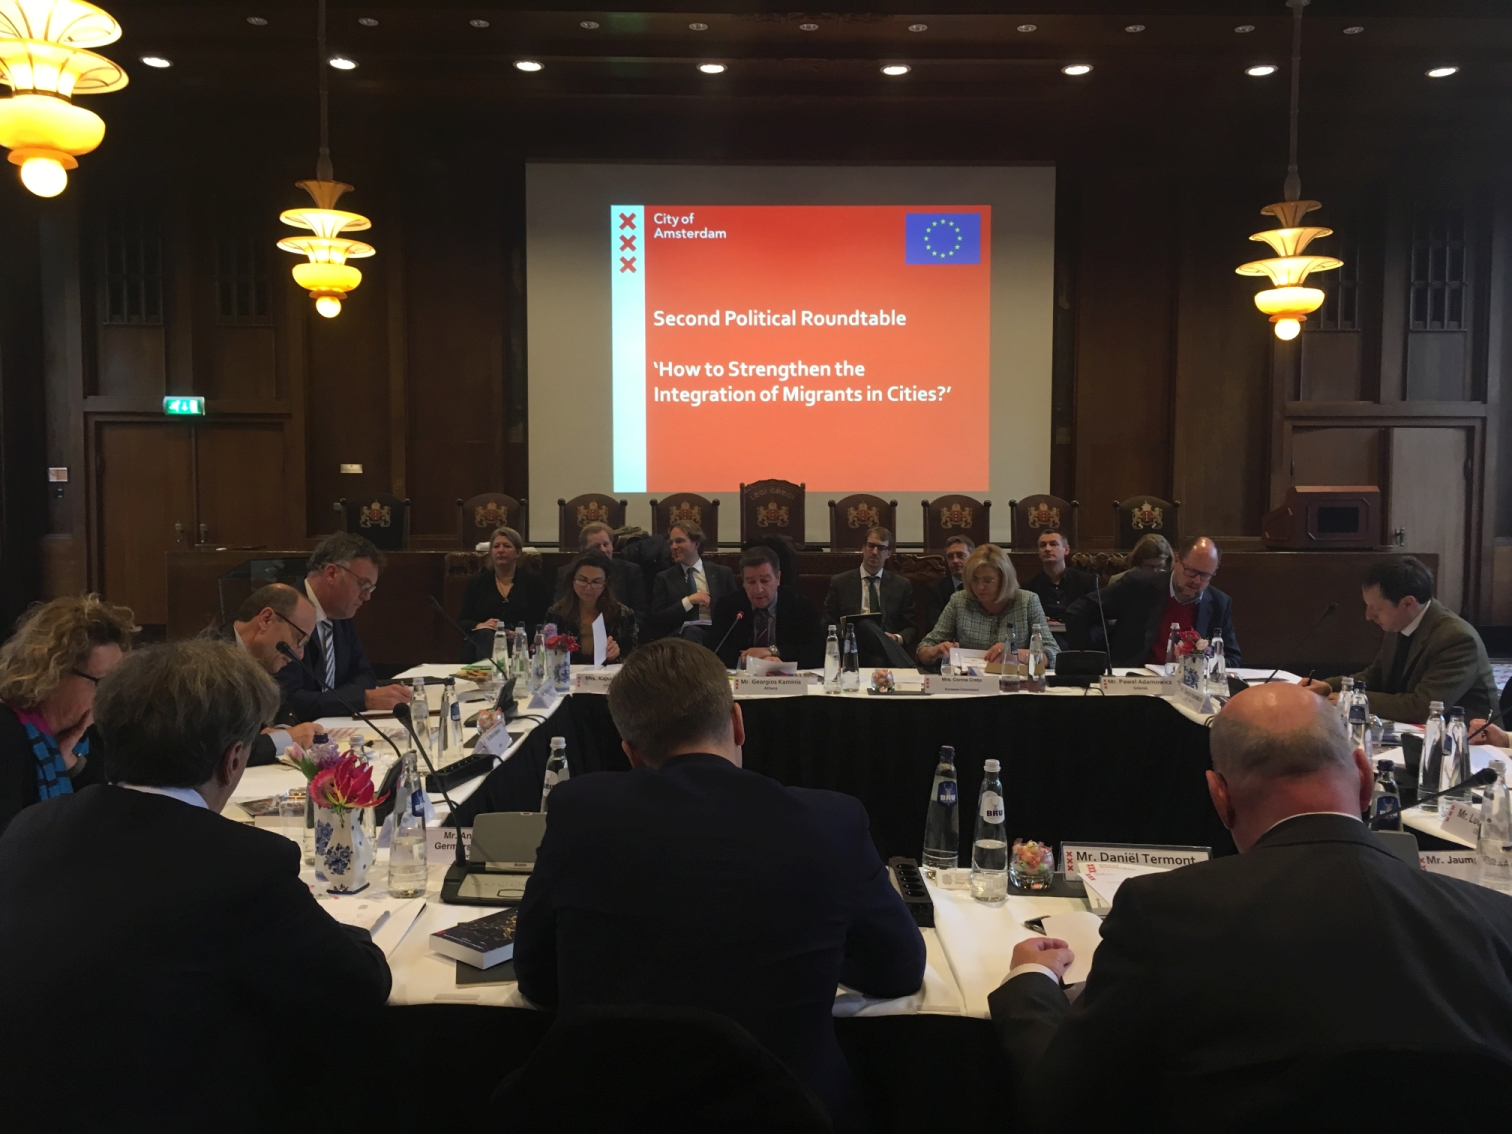 Amsterdam hosts political roundtable on refugee integration